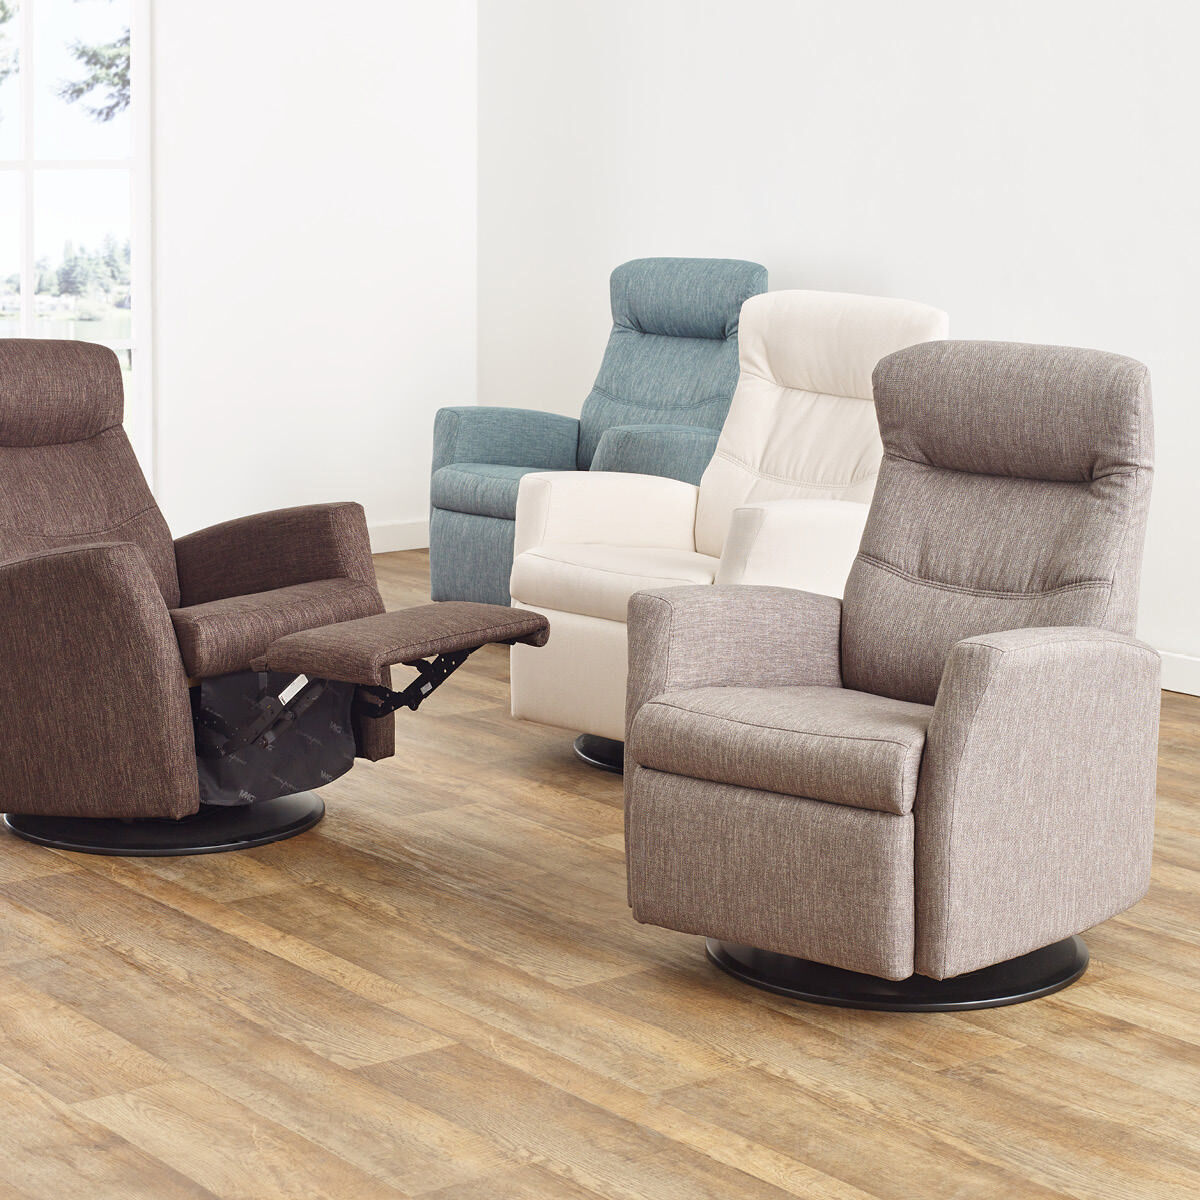 Fauteuil Inclinable Vista Habitat Gris Urban Barn